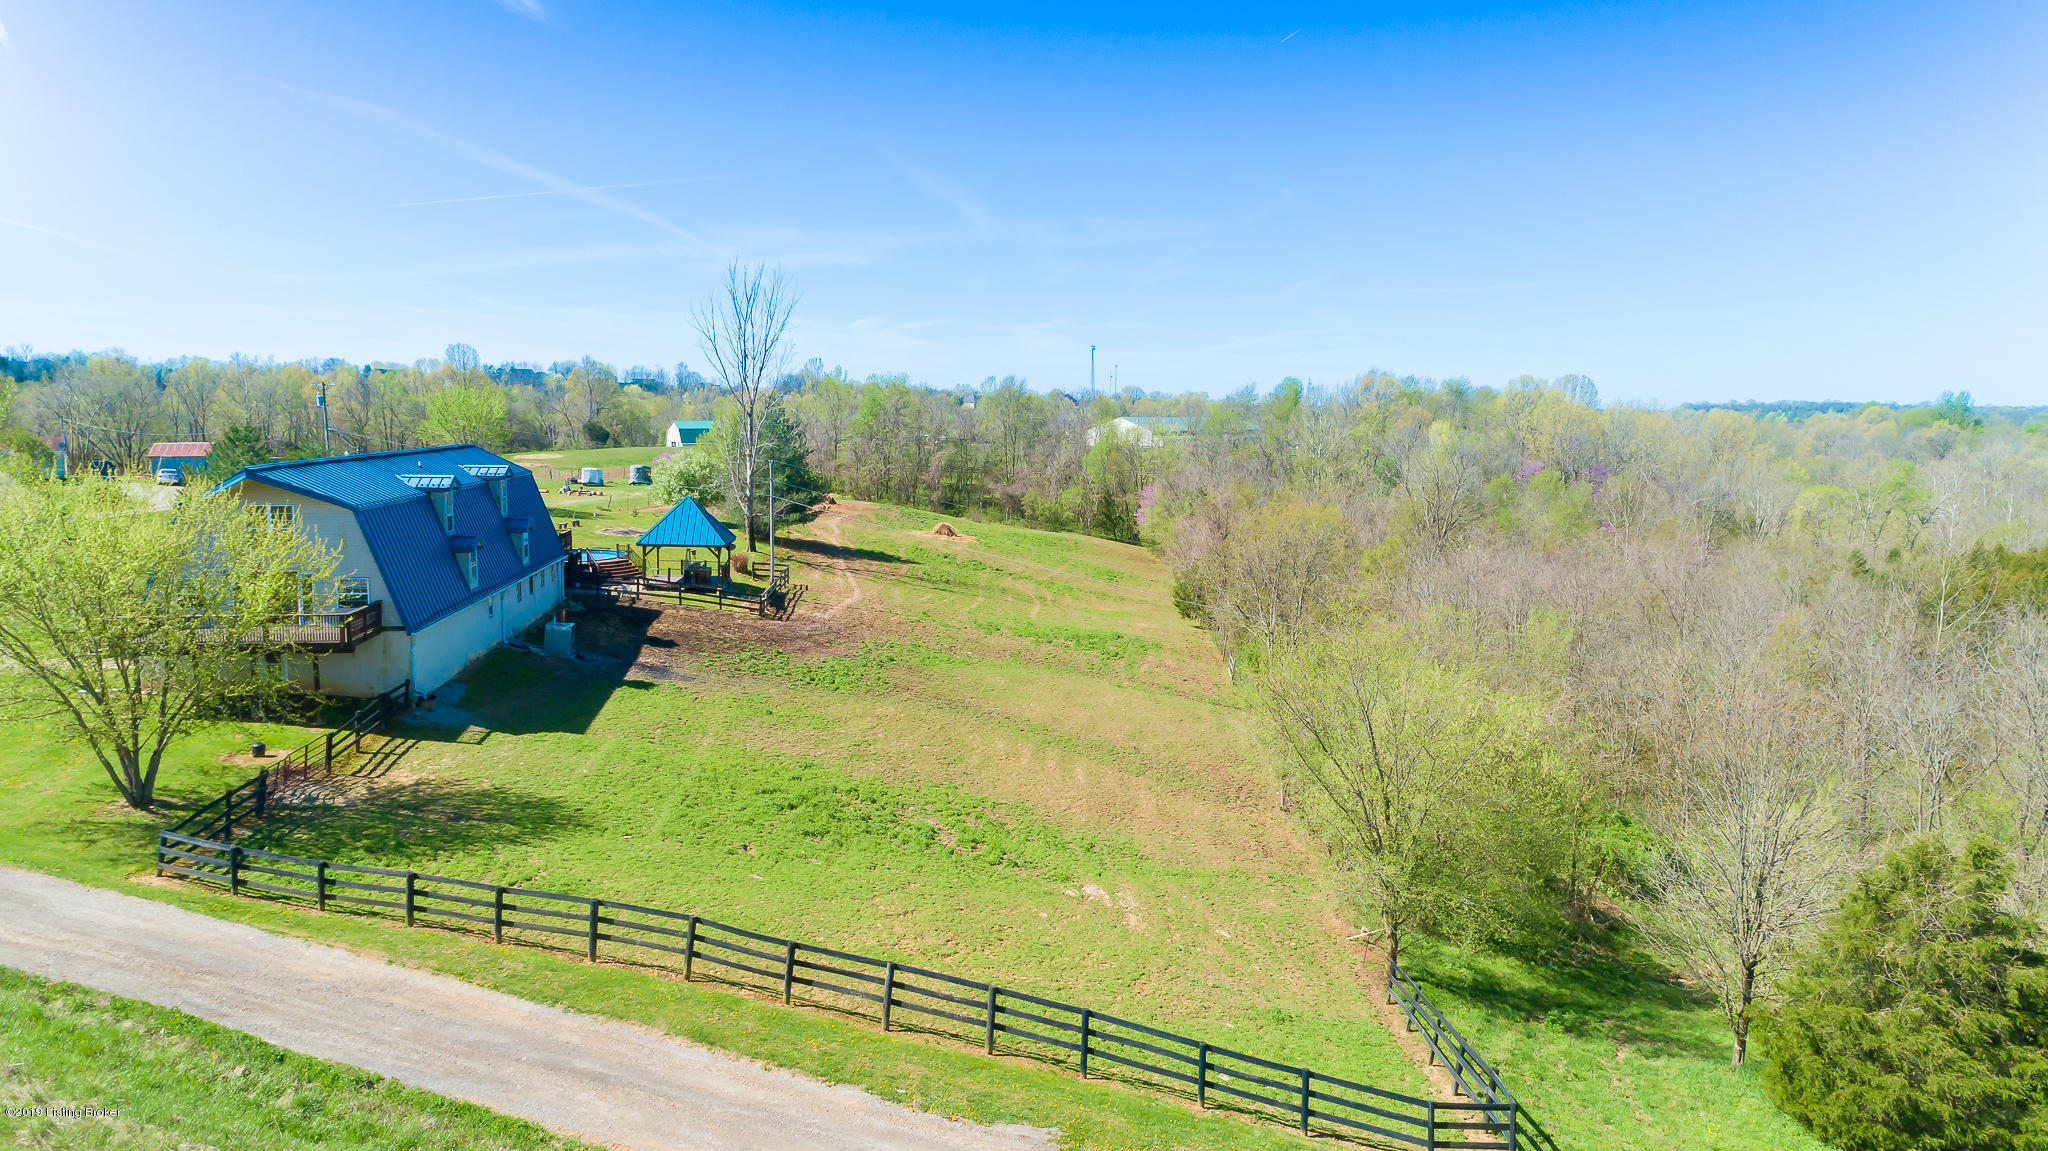 145 Hill Valley Dr, Taylorsville, Kentucky 40071, 5 Bedrooms Bedrooms, 11 Rooms Rooms,2 BathroomsBathrooms,Residential,For Sale,Hill Valley,1533376